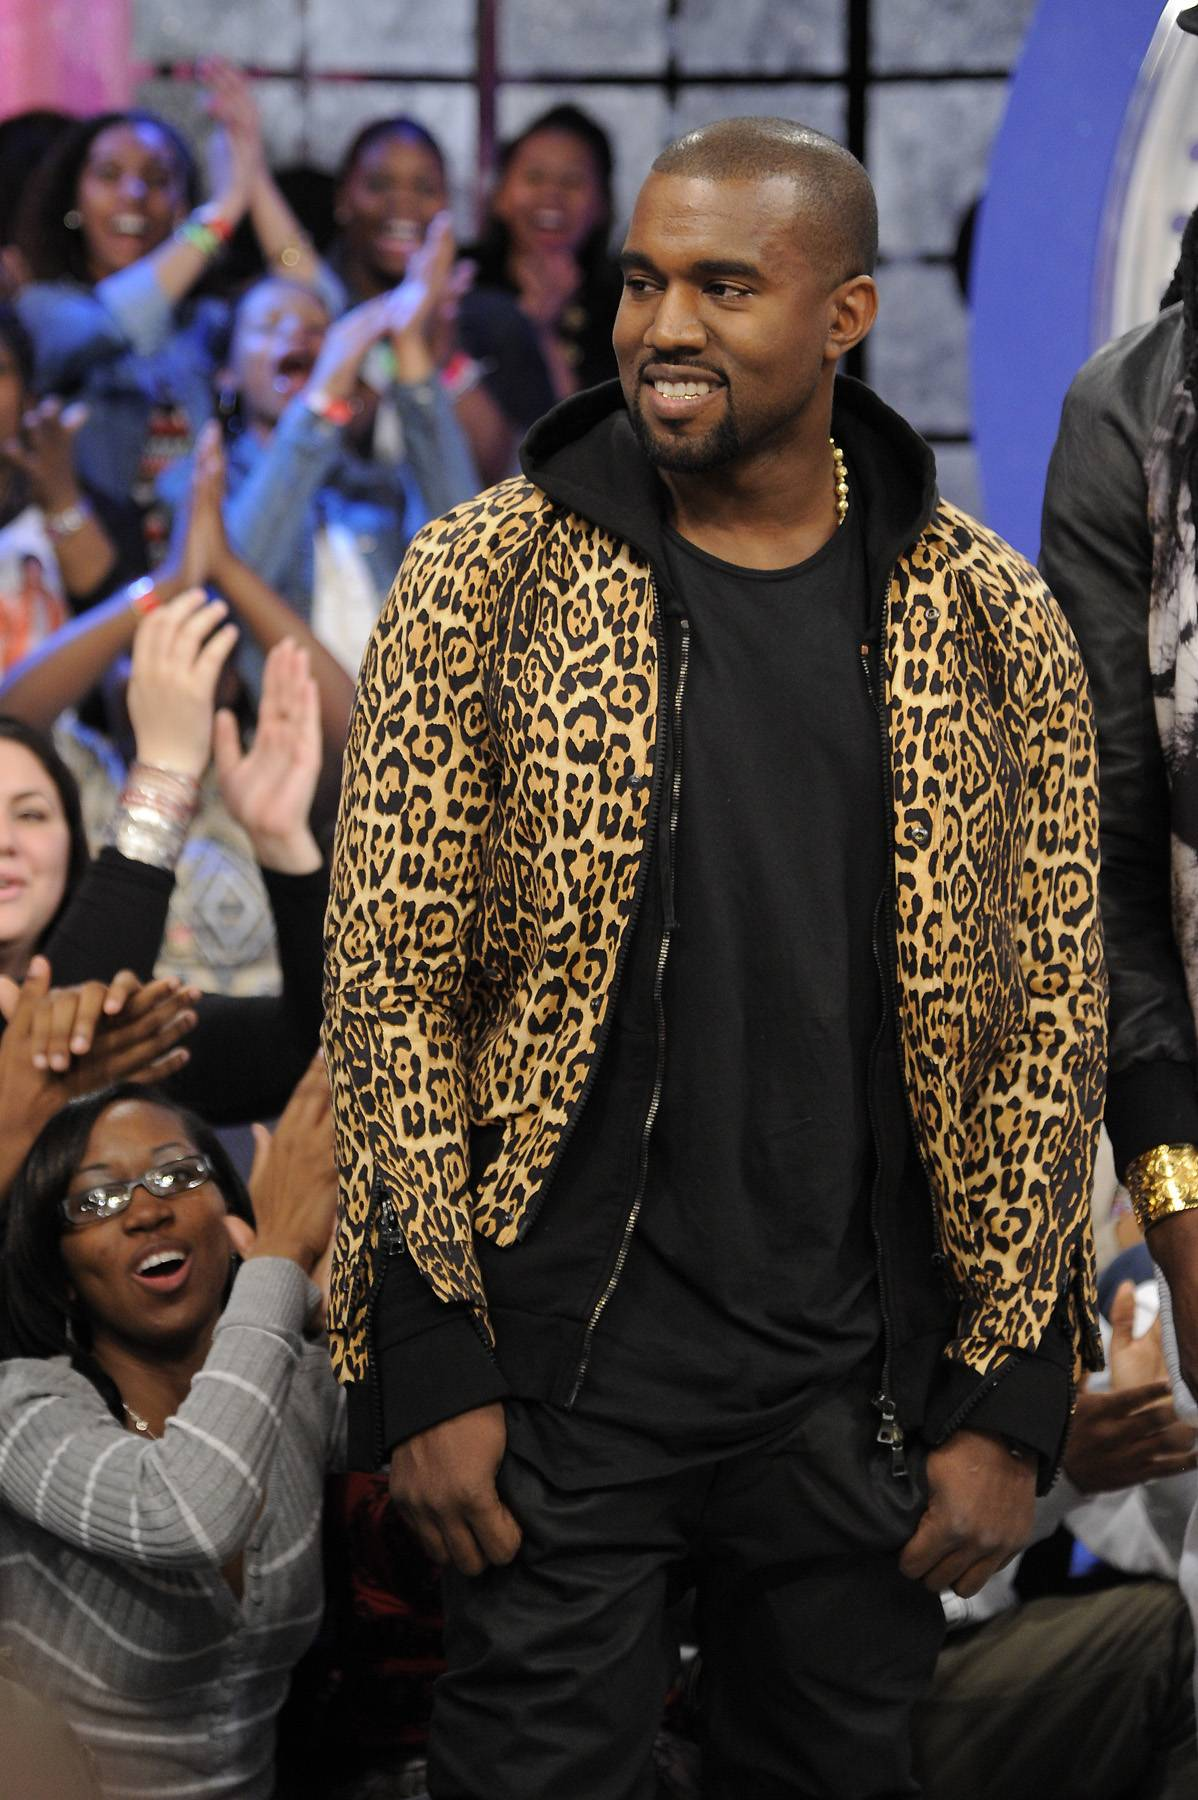 """Kanye West (@kanyewest)  - TWEET: """"I changed the name of the song THERAFLU to WAY TOO COLD and you can buy it now at http://KANYEWEST.COM""""   After complaints from the makers of the over the counter cold medicine Theraflu, West changes the name of his new single.(Photo: John Ricard/BET)"""